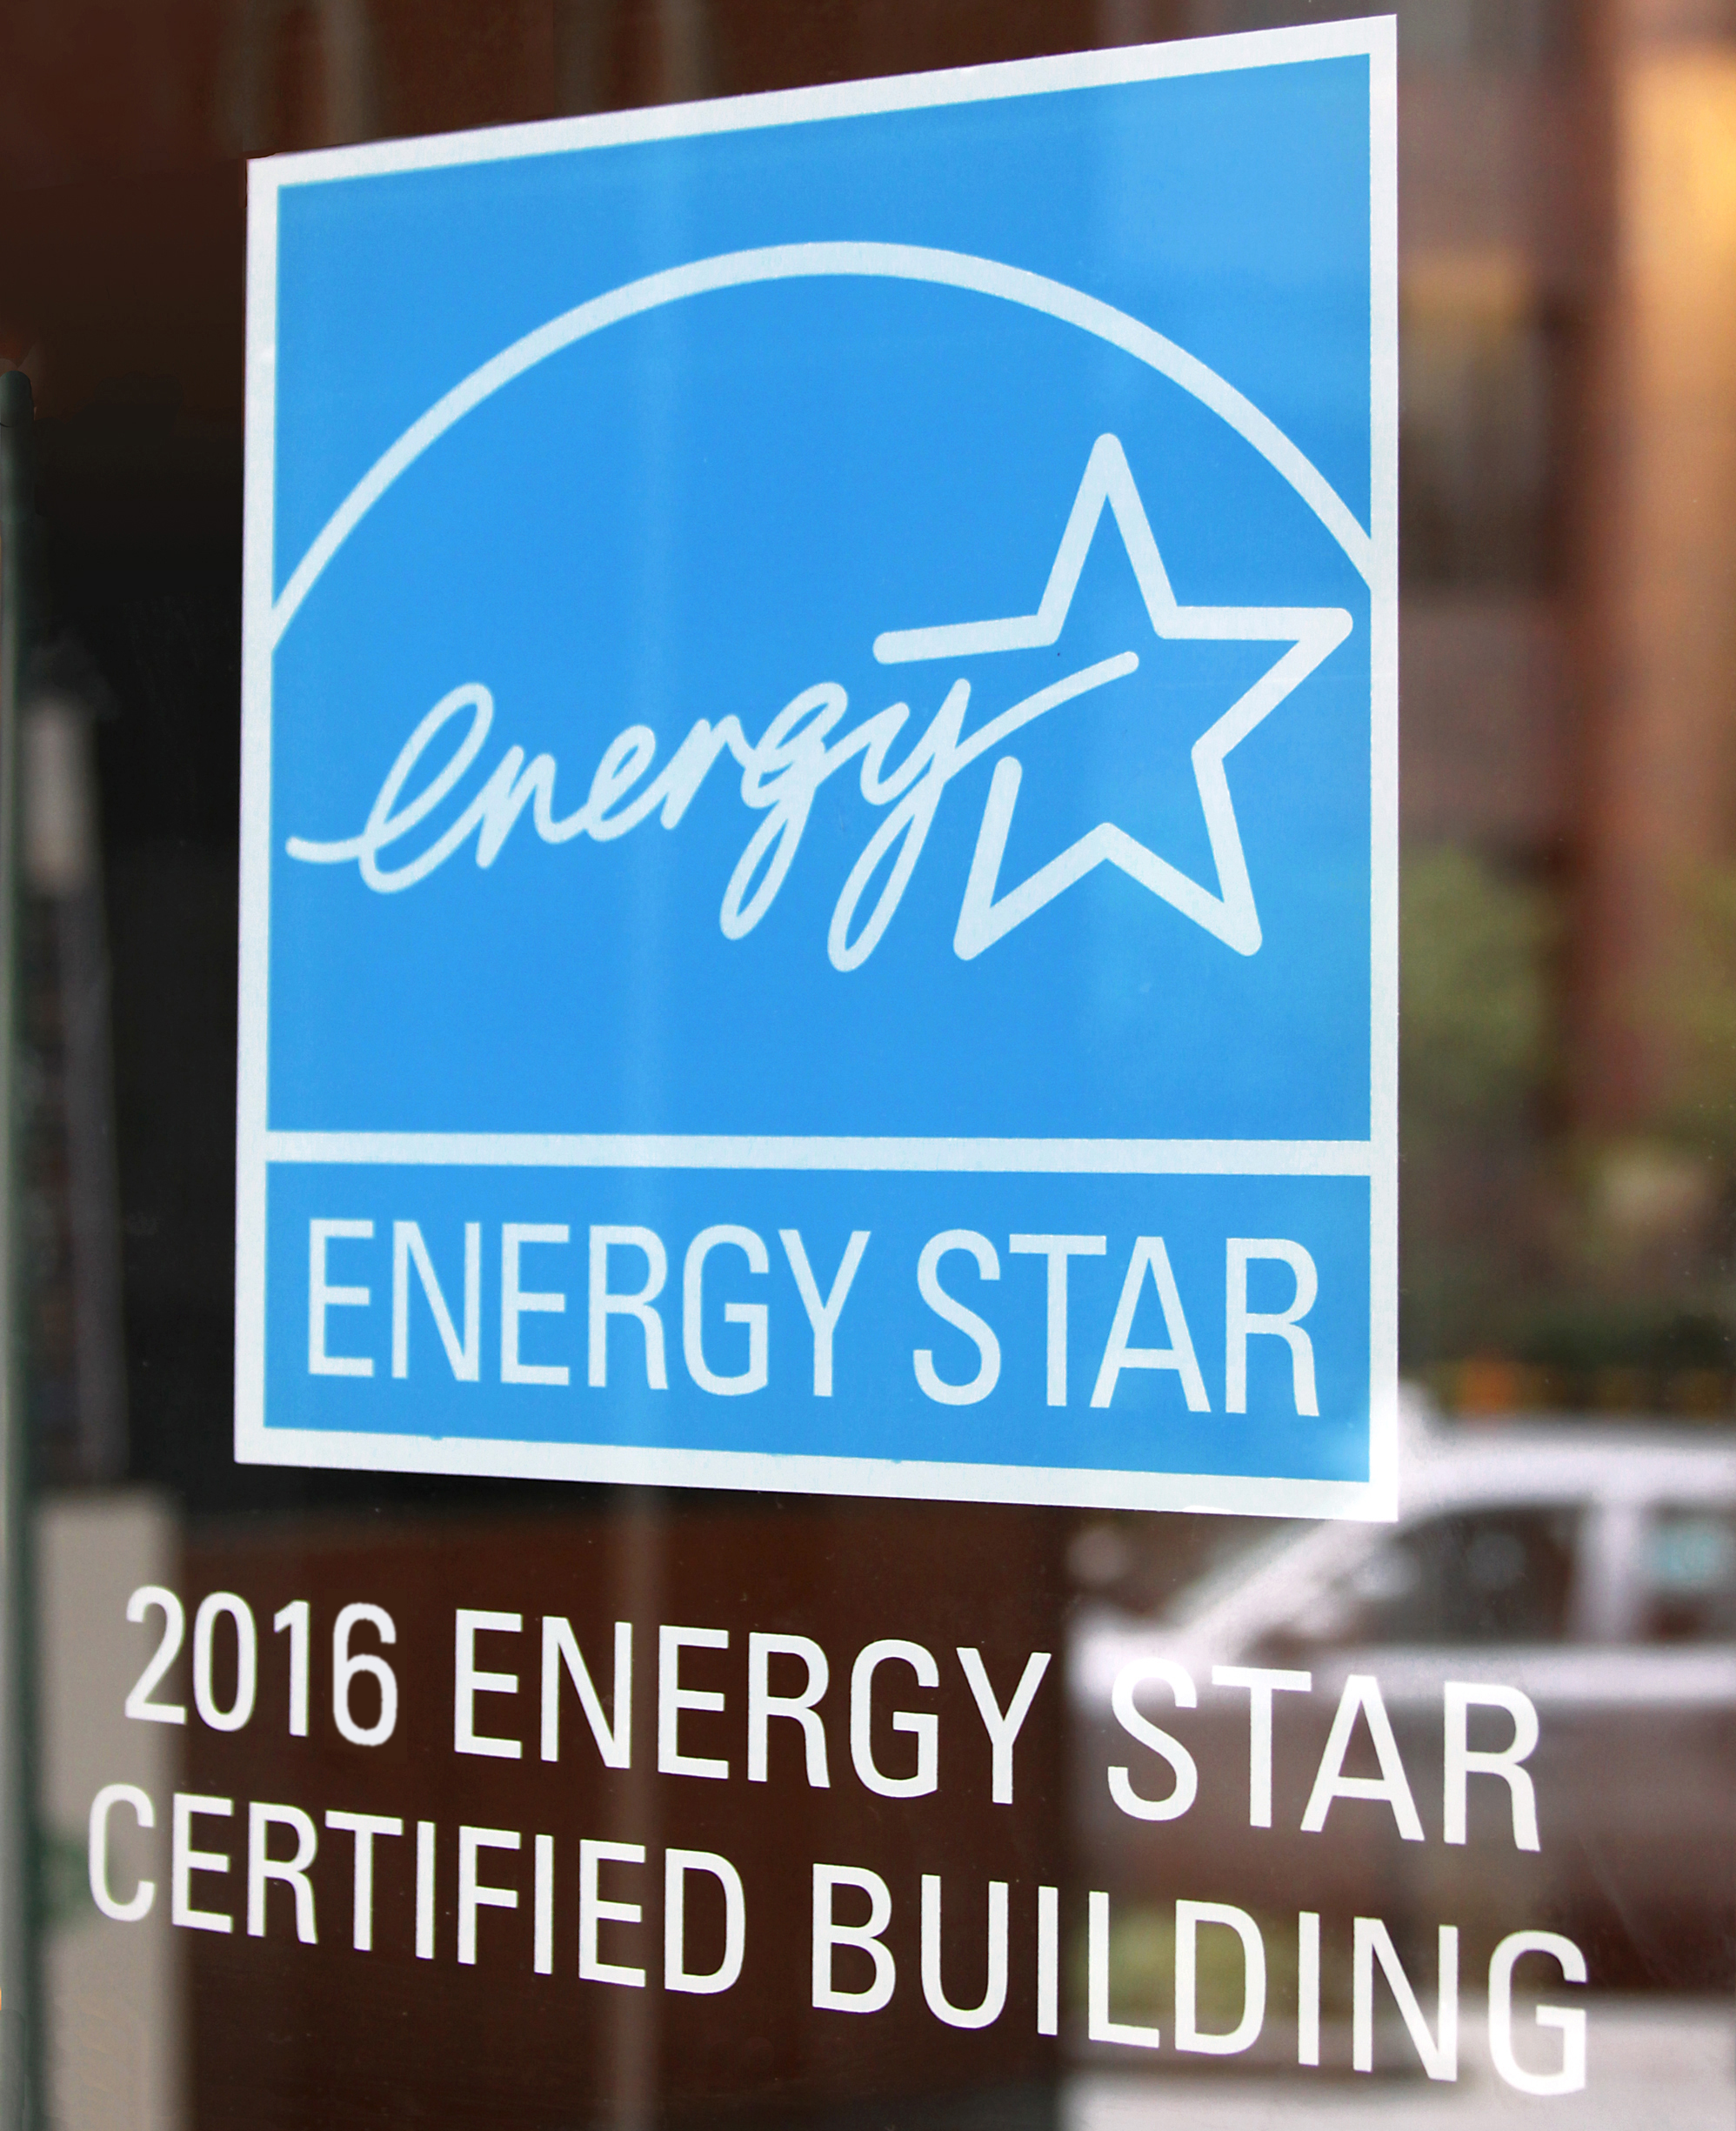 ENERGY STAR 2016 building decal